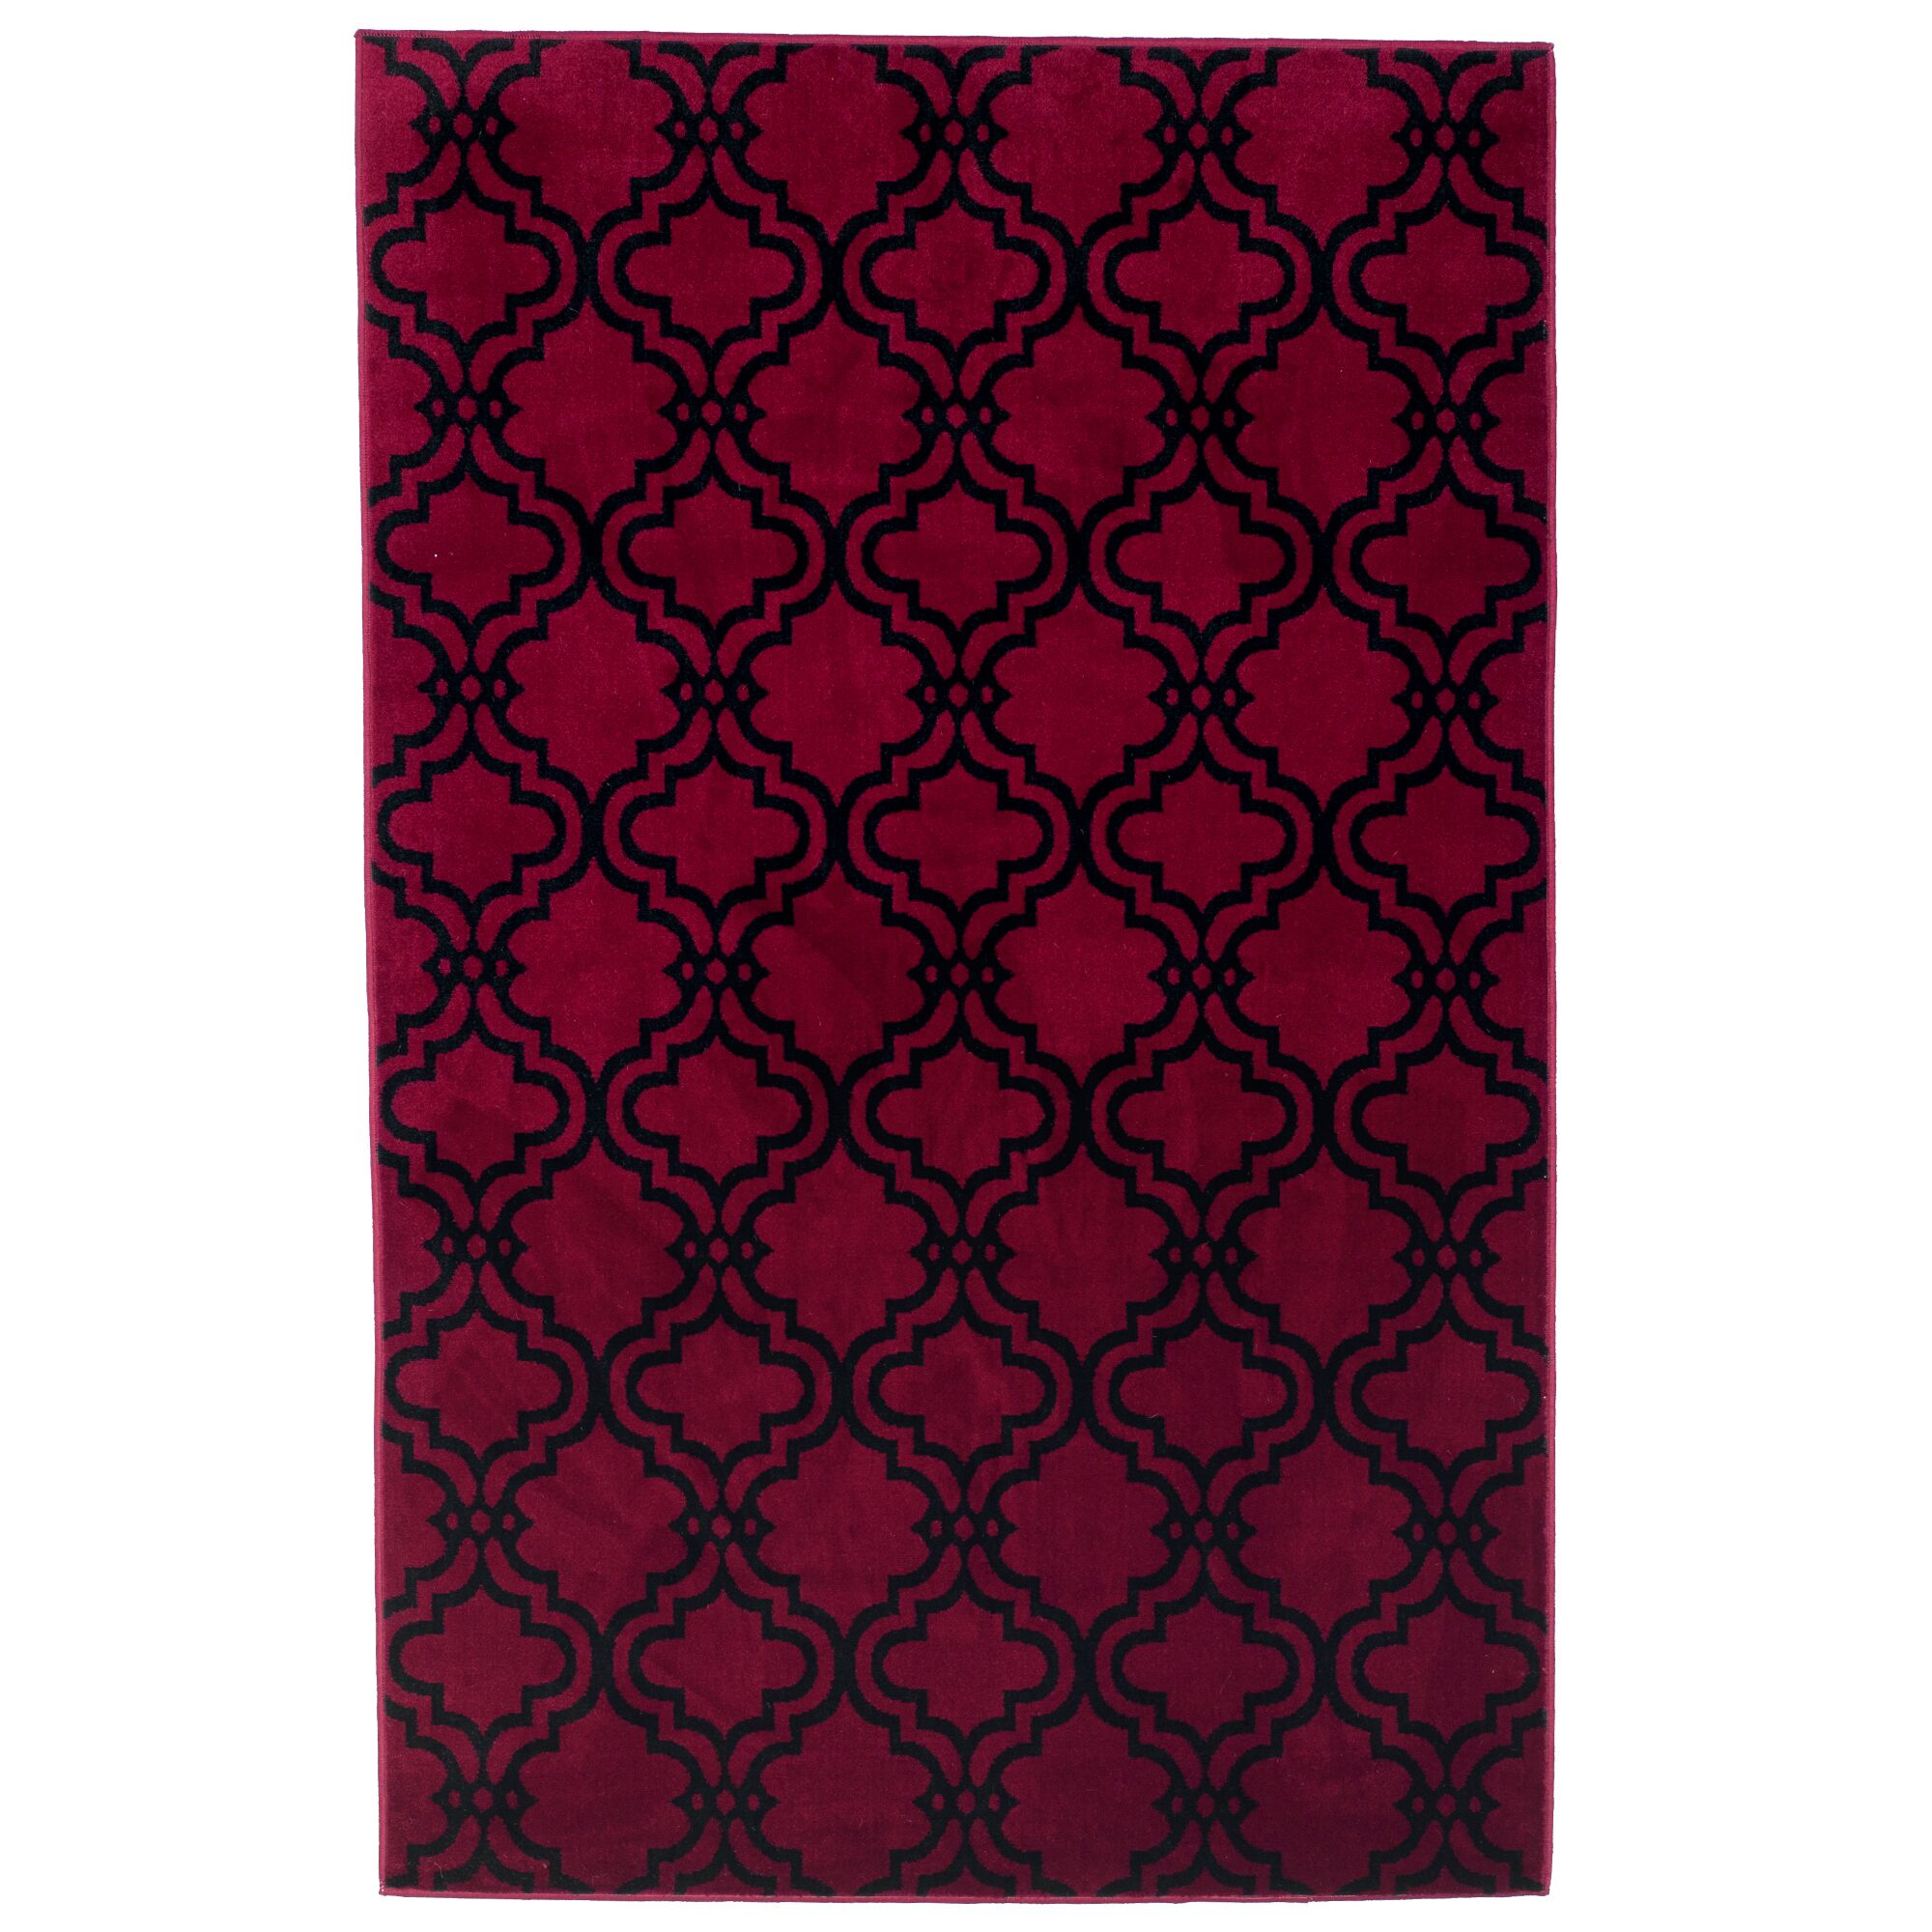 Double Lattice Red Area Rug Rug Size: Rectangle 8' x 10'